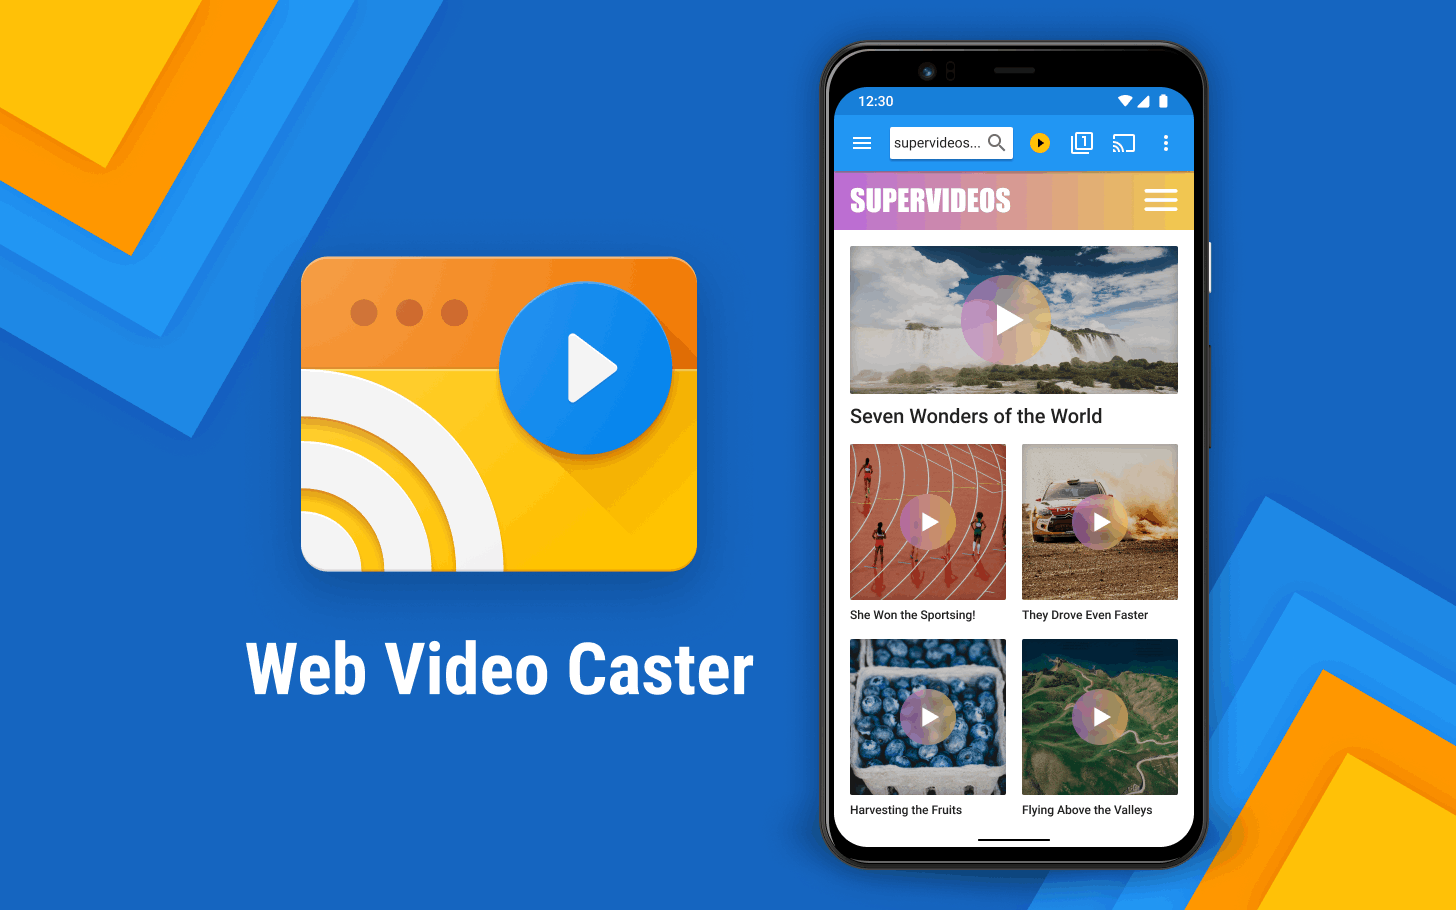 Web Video Cast App - See How to Download